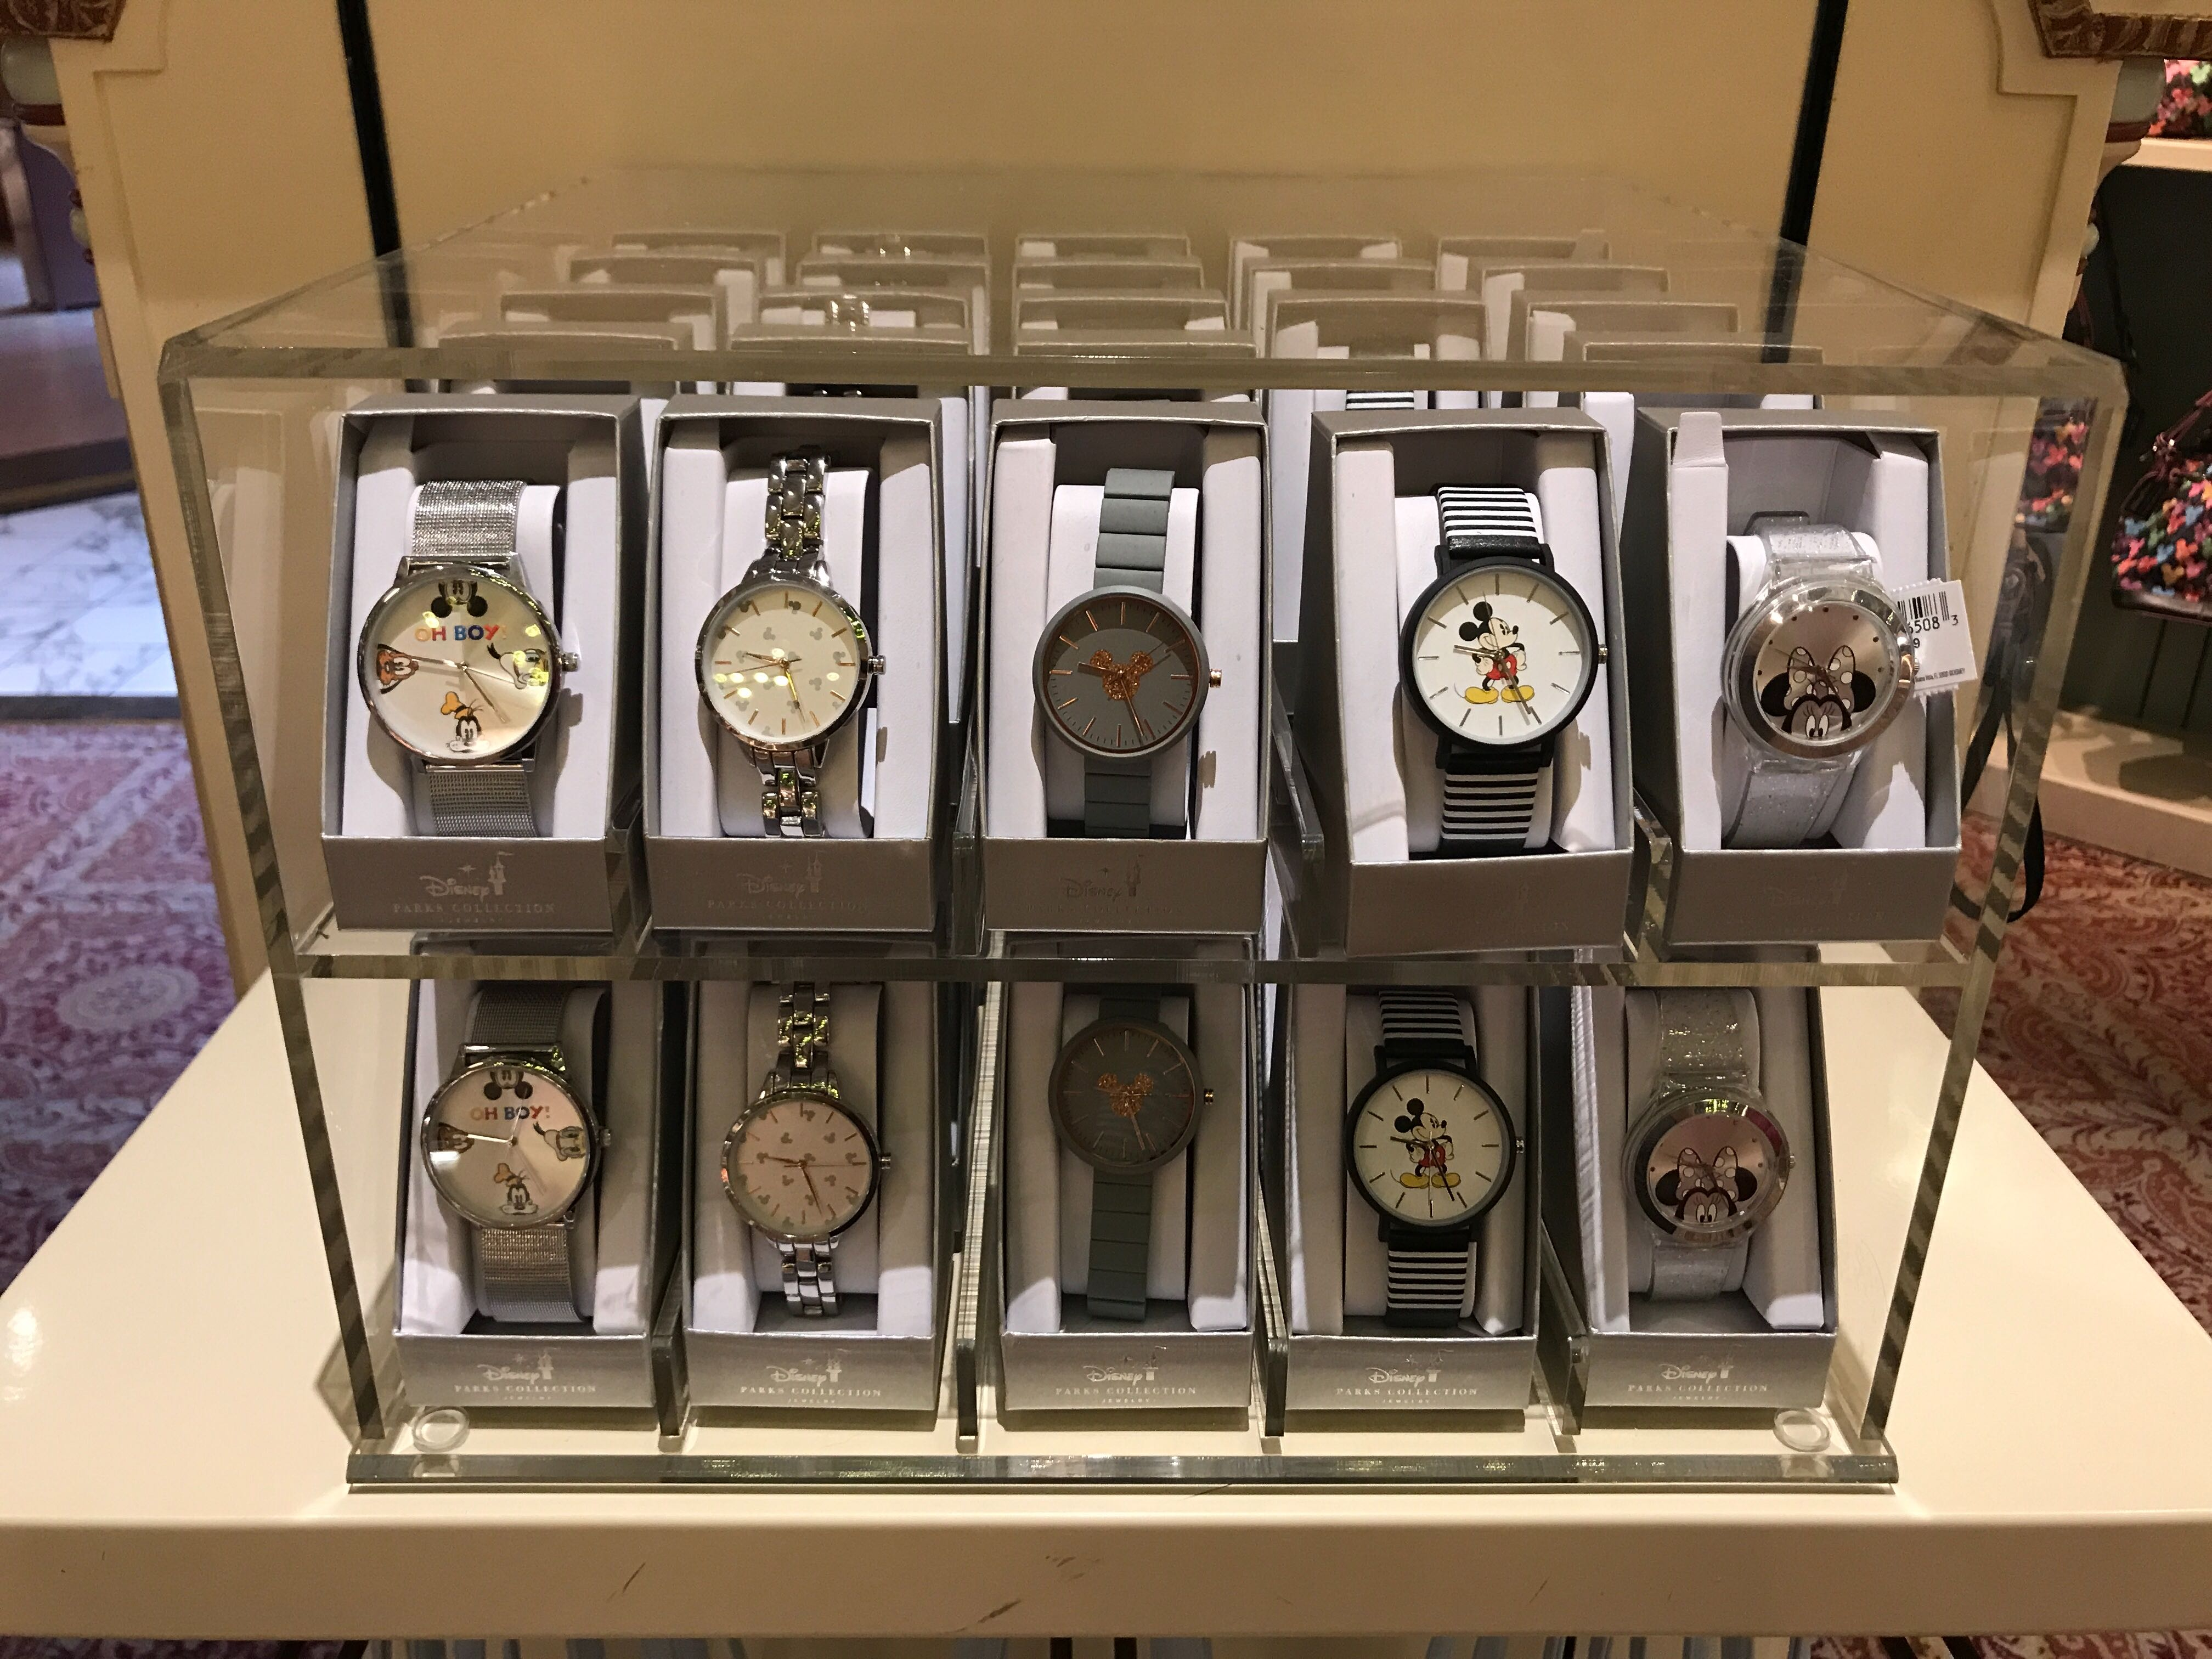 New Disney Parks Watch Collection Makes a Timely Debut at Walt Disney World